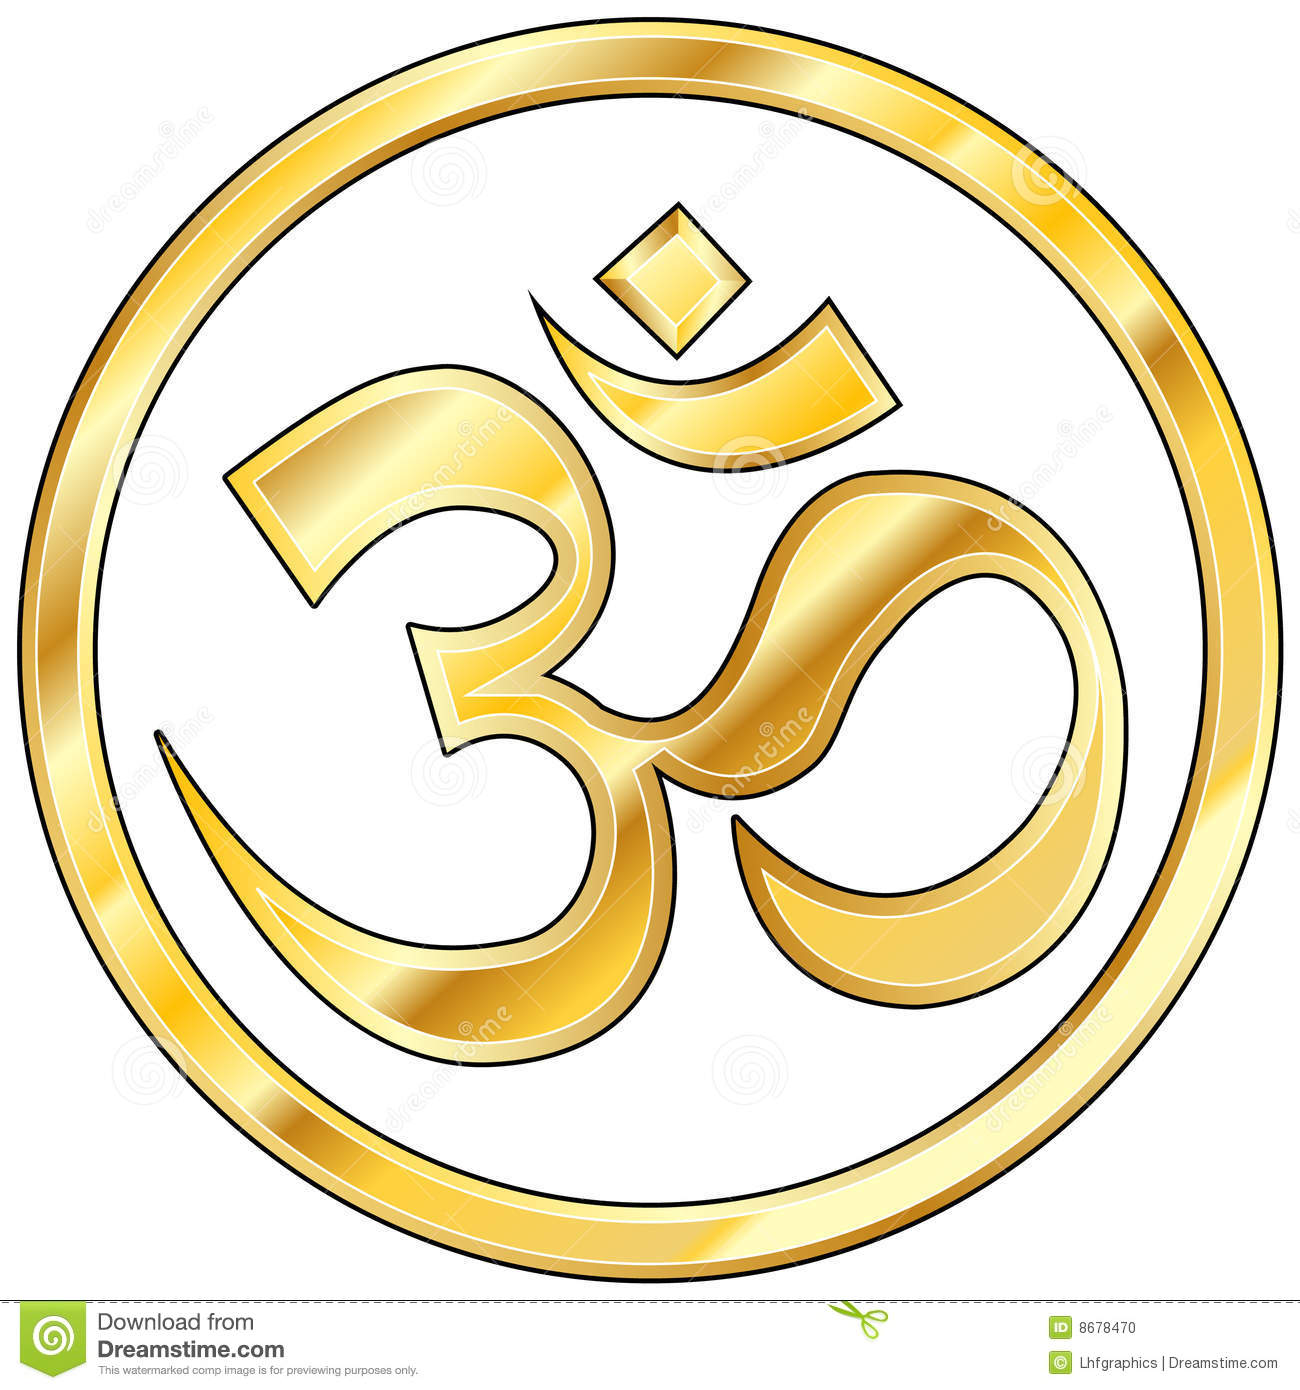 Hindu Om Vector In Gold Stock Vector Illustration Of Mantra 8678470